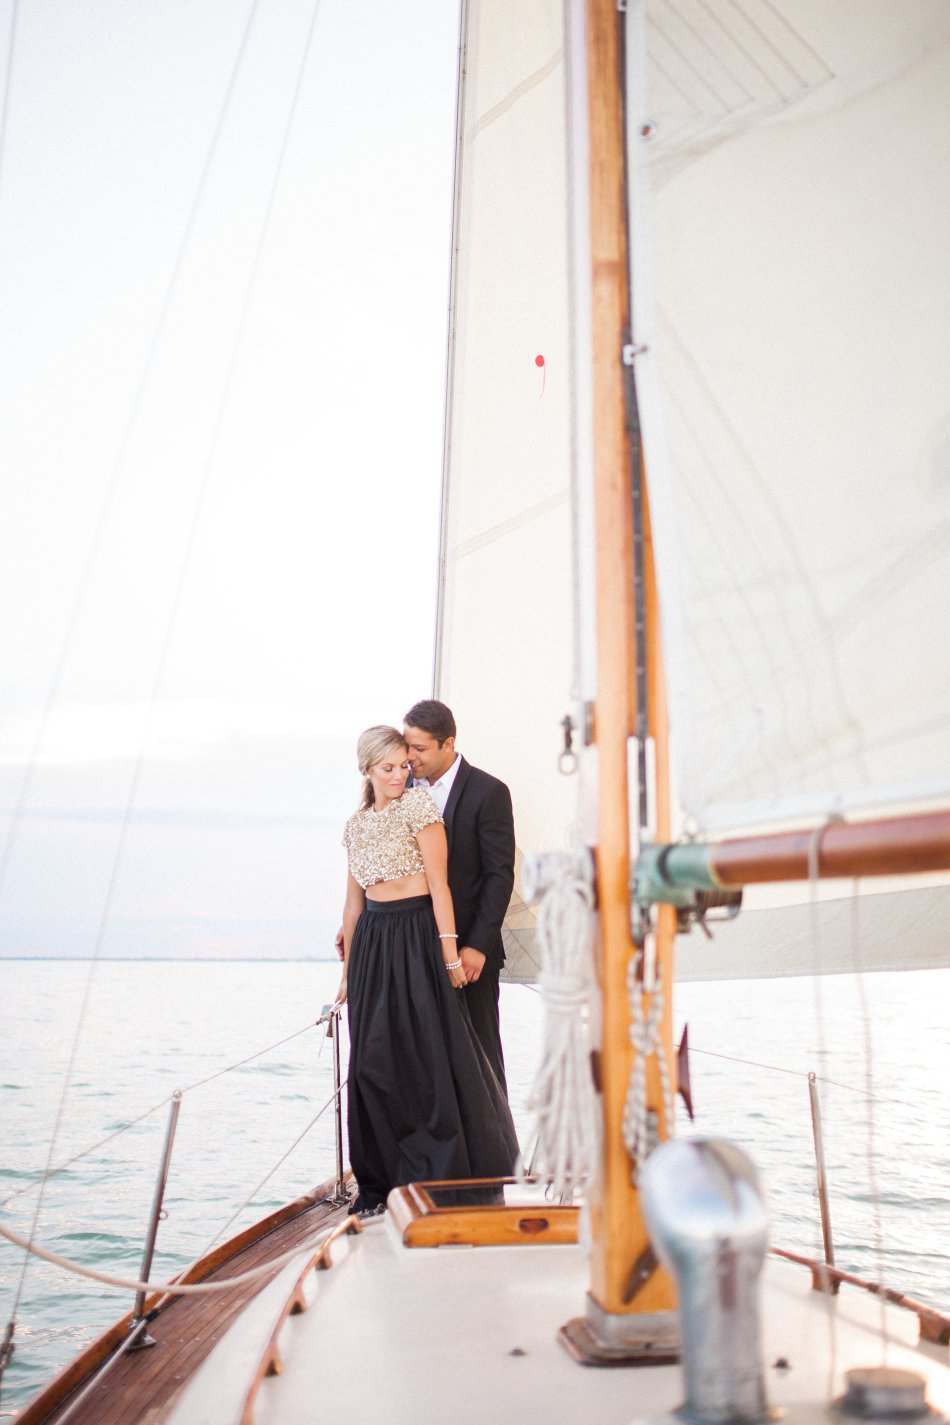 naples-luxury-sailing-engagement-photography-nautical-sailboat-engagement_1052.jpg